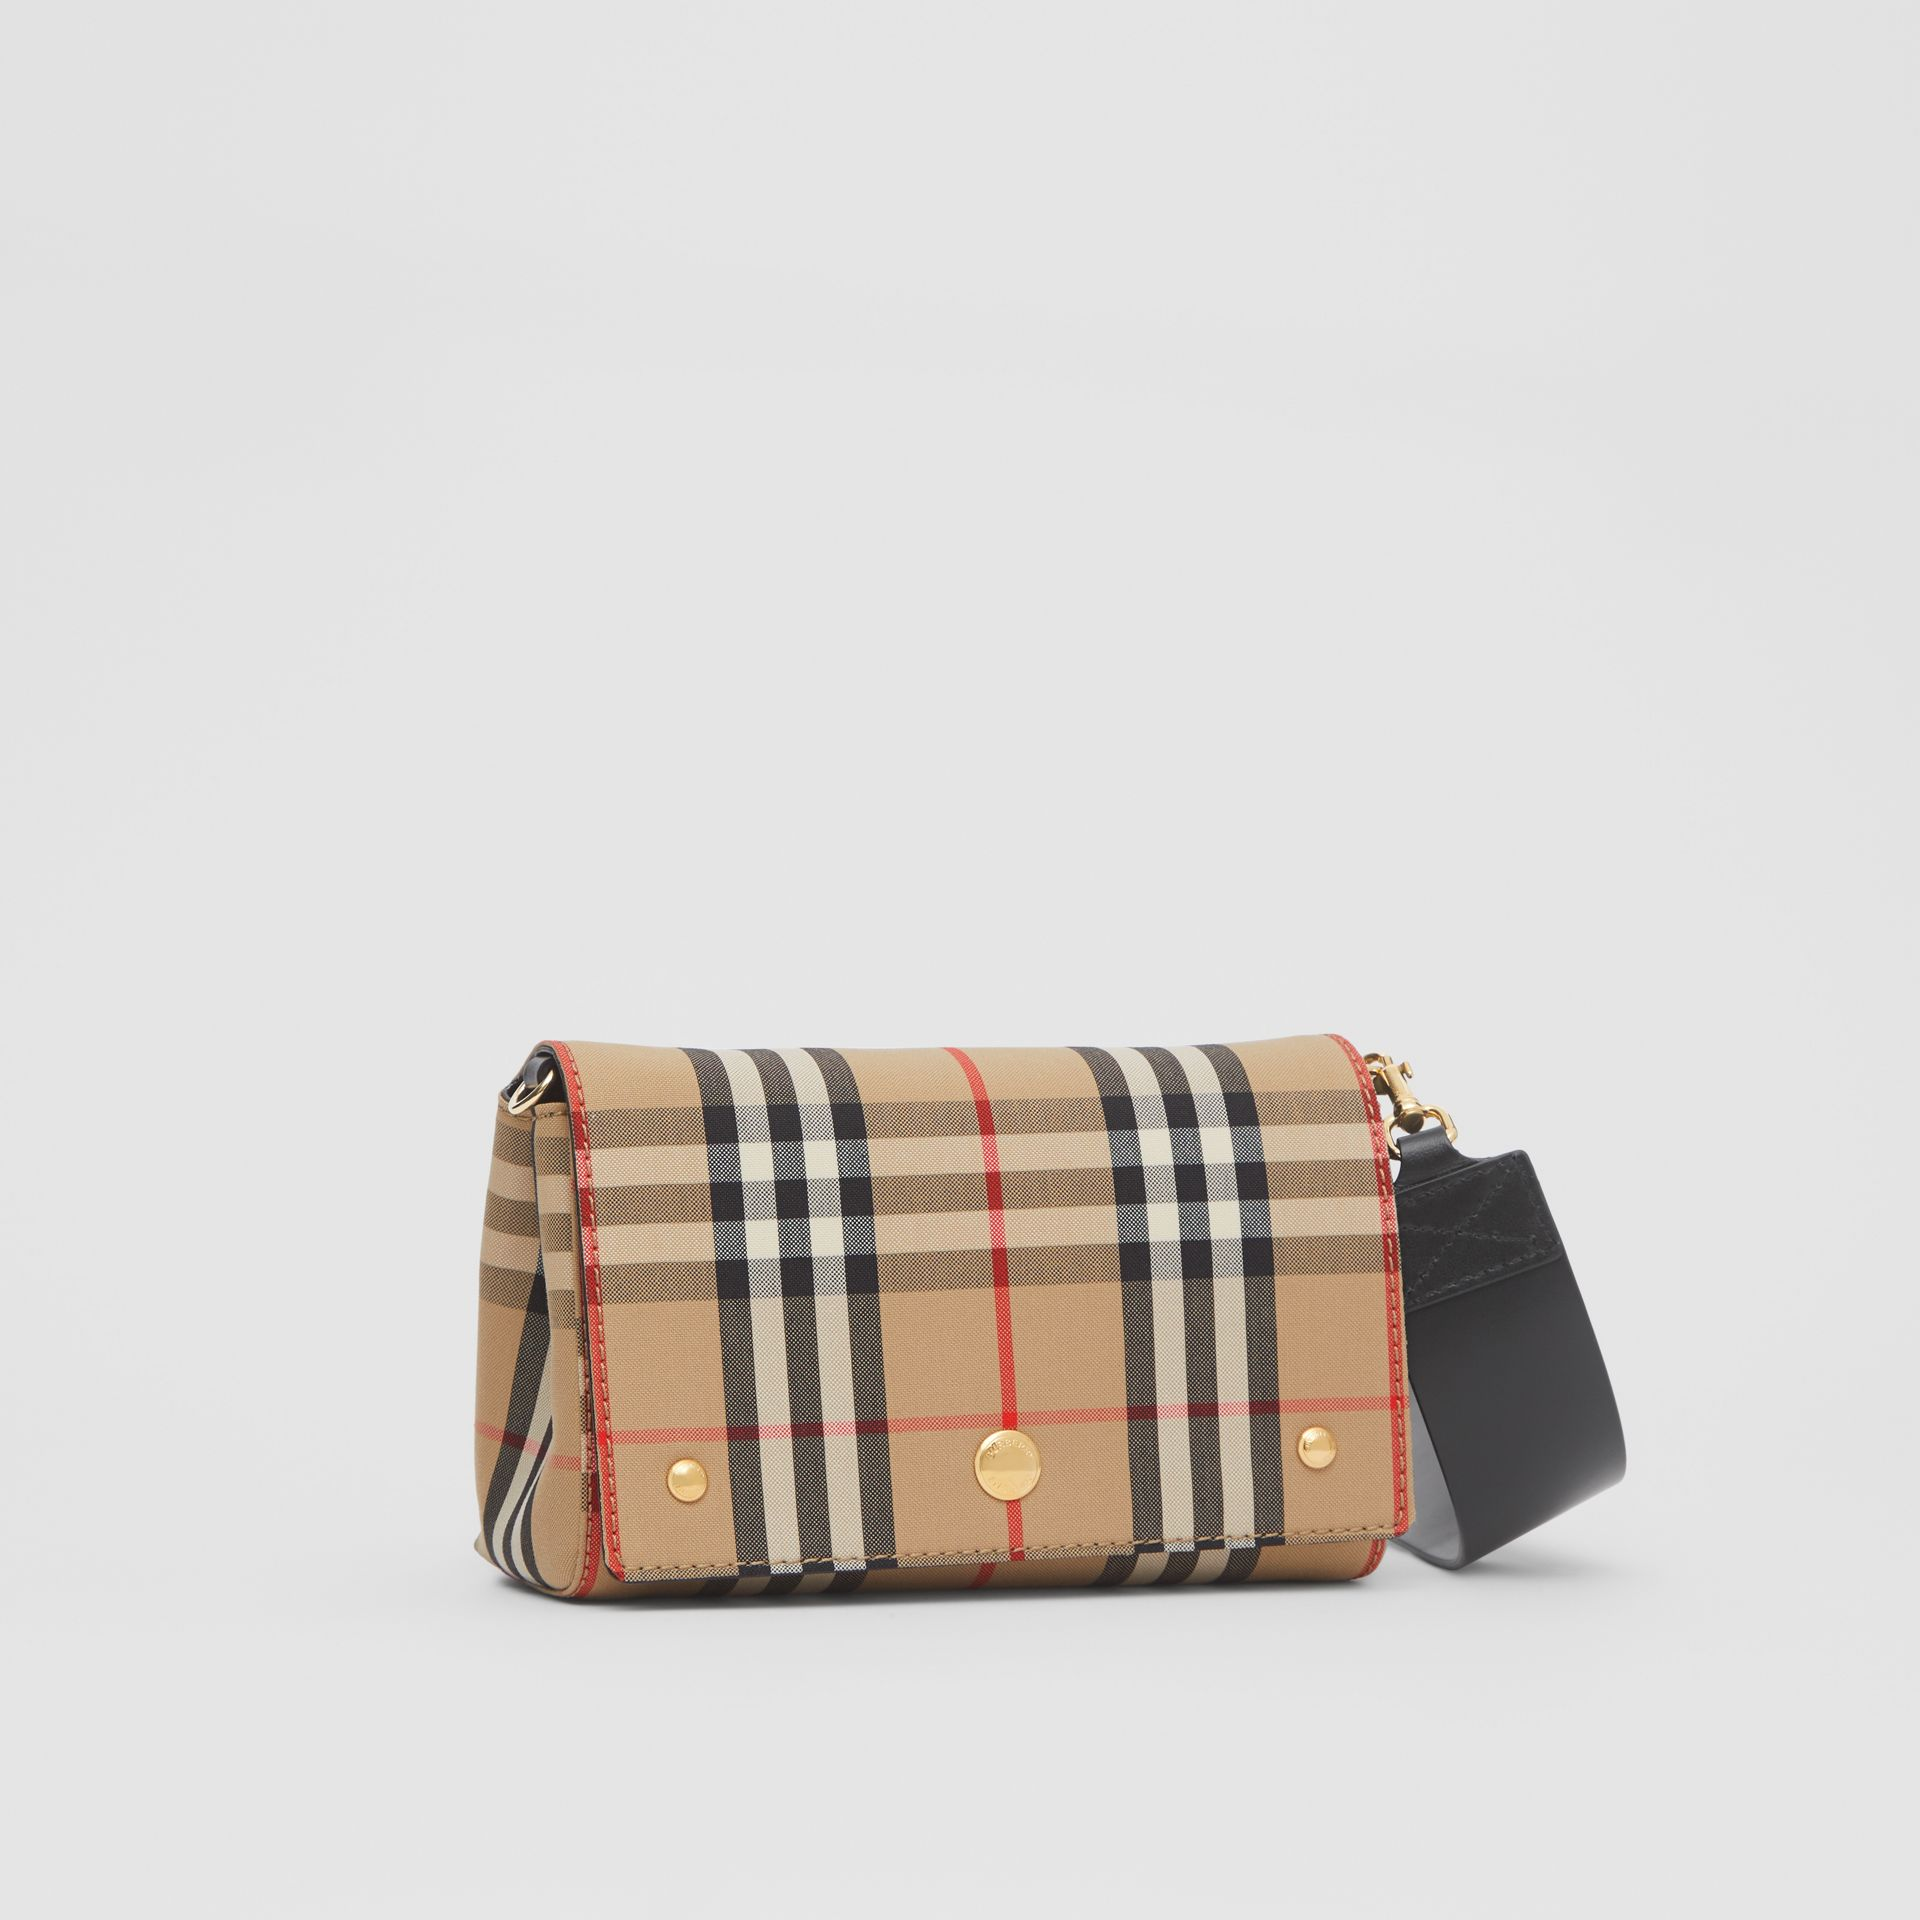 Small Vintage Check and Leather Crossbody Bag in Archive Beige - Women | Burberry - gallery image 6